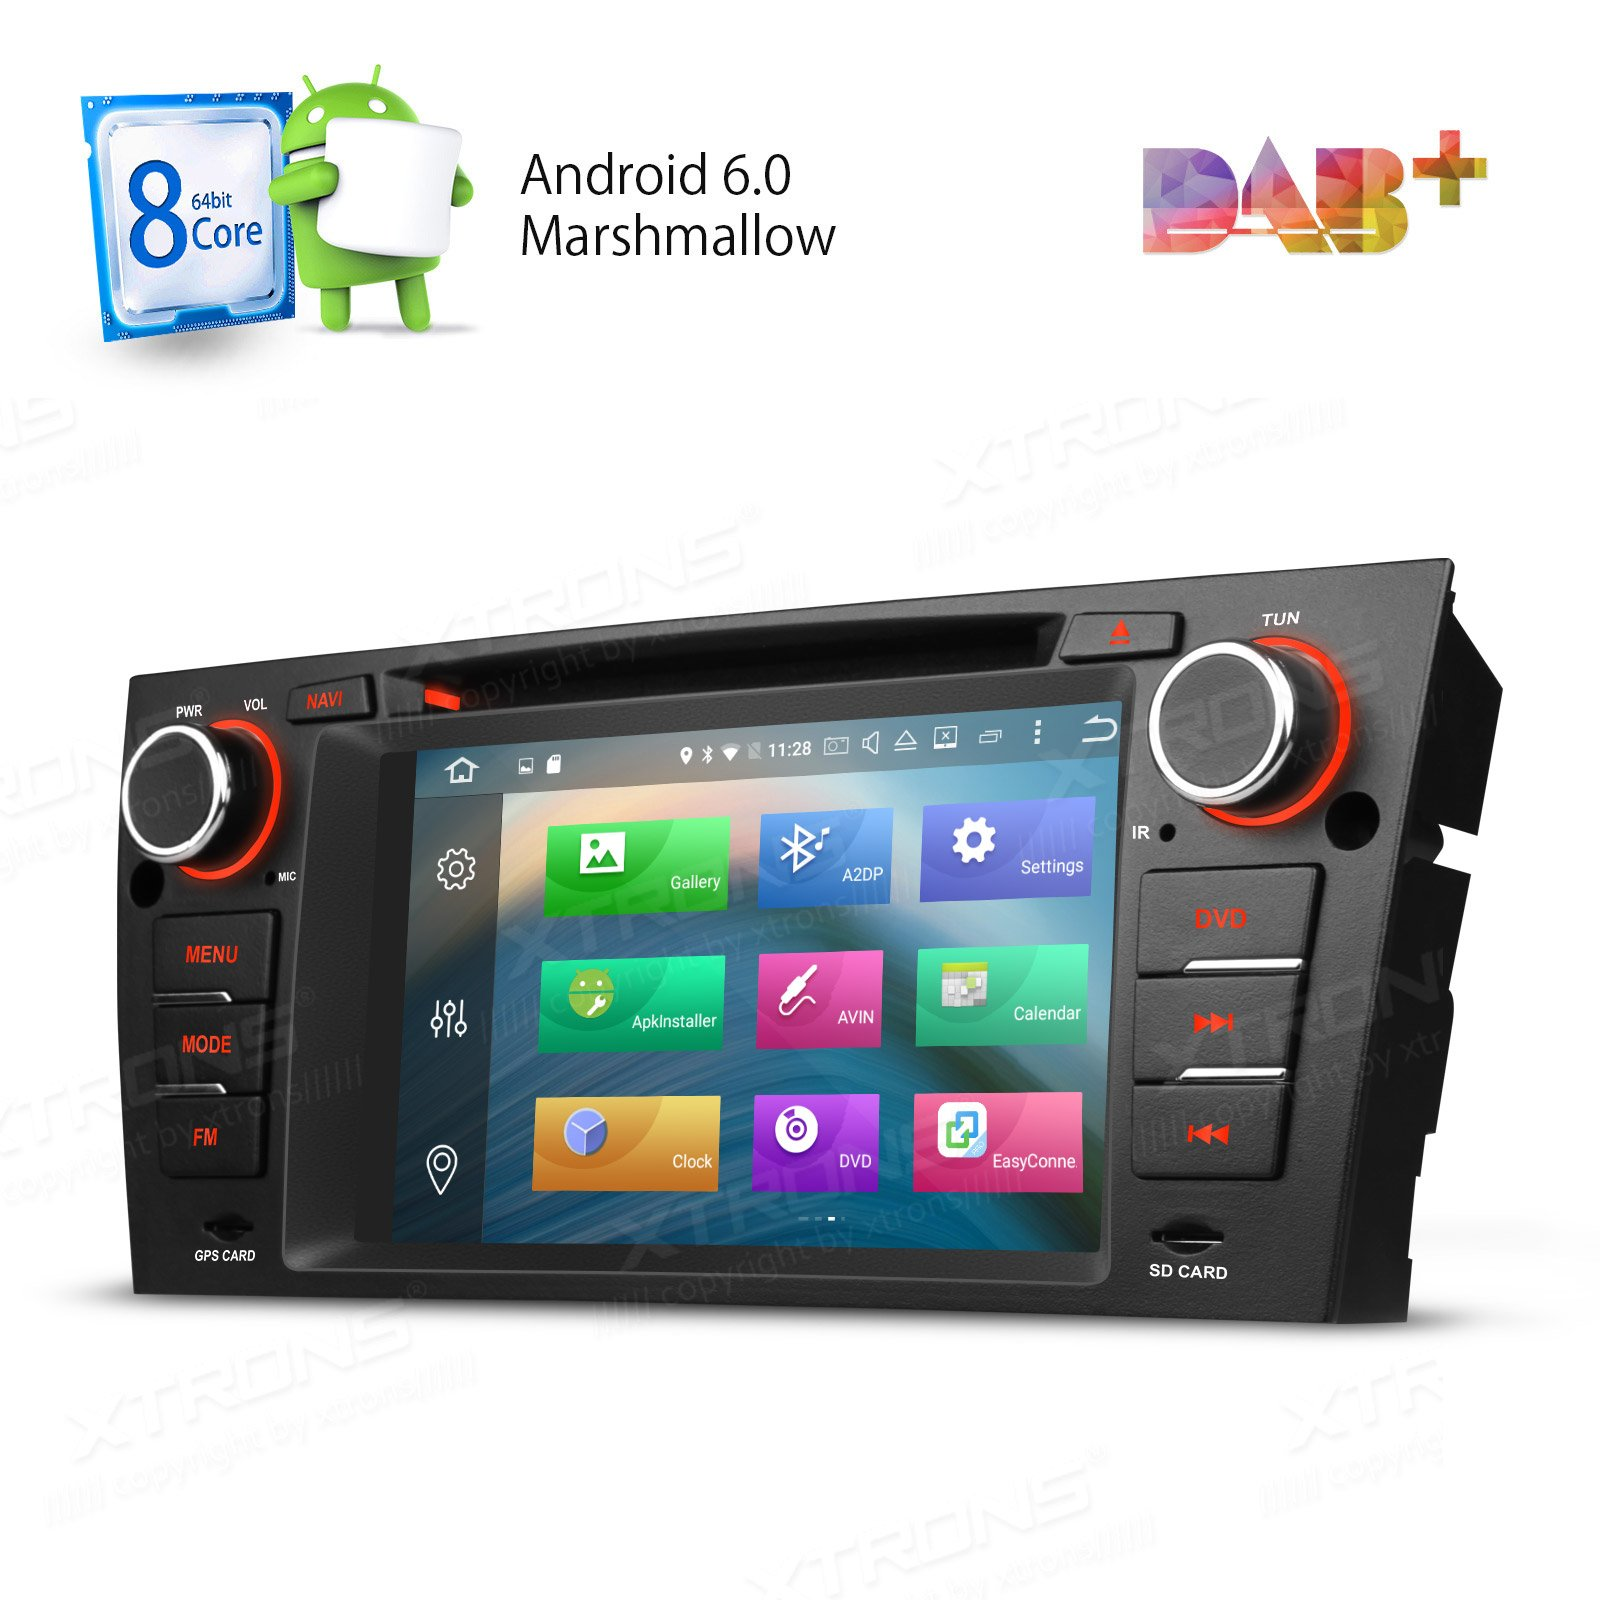 XTRONS Octa-Core 64Bit 2G RAM 32GB ROM 7 Inch HD Capacitive Touch Screen Car Stereo Radio DVD Player GPS CANbus Screen Mirroring Function OBD2 Tire Pressure Monitoring for BMW E90 E91 E92 E93